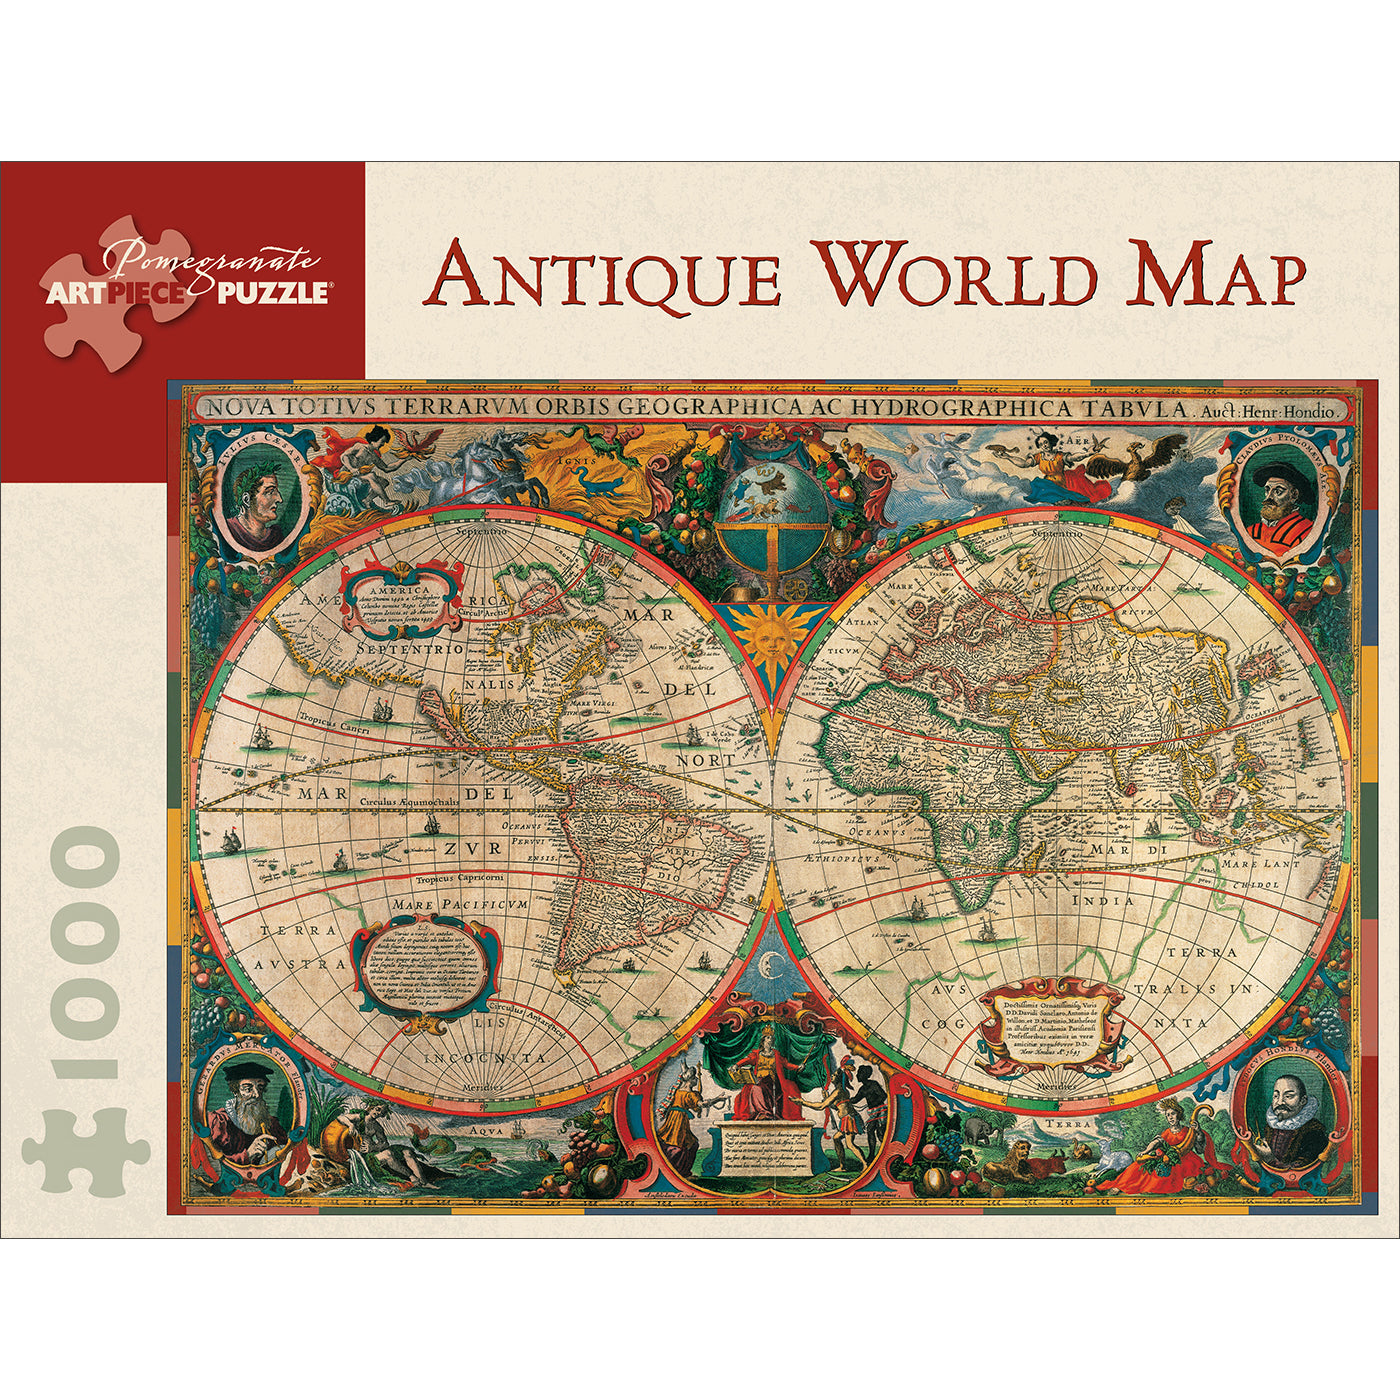 Antique World Map Puzzle - 1,000 Pieces